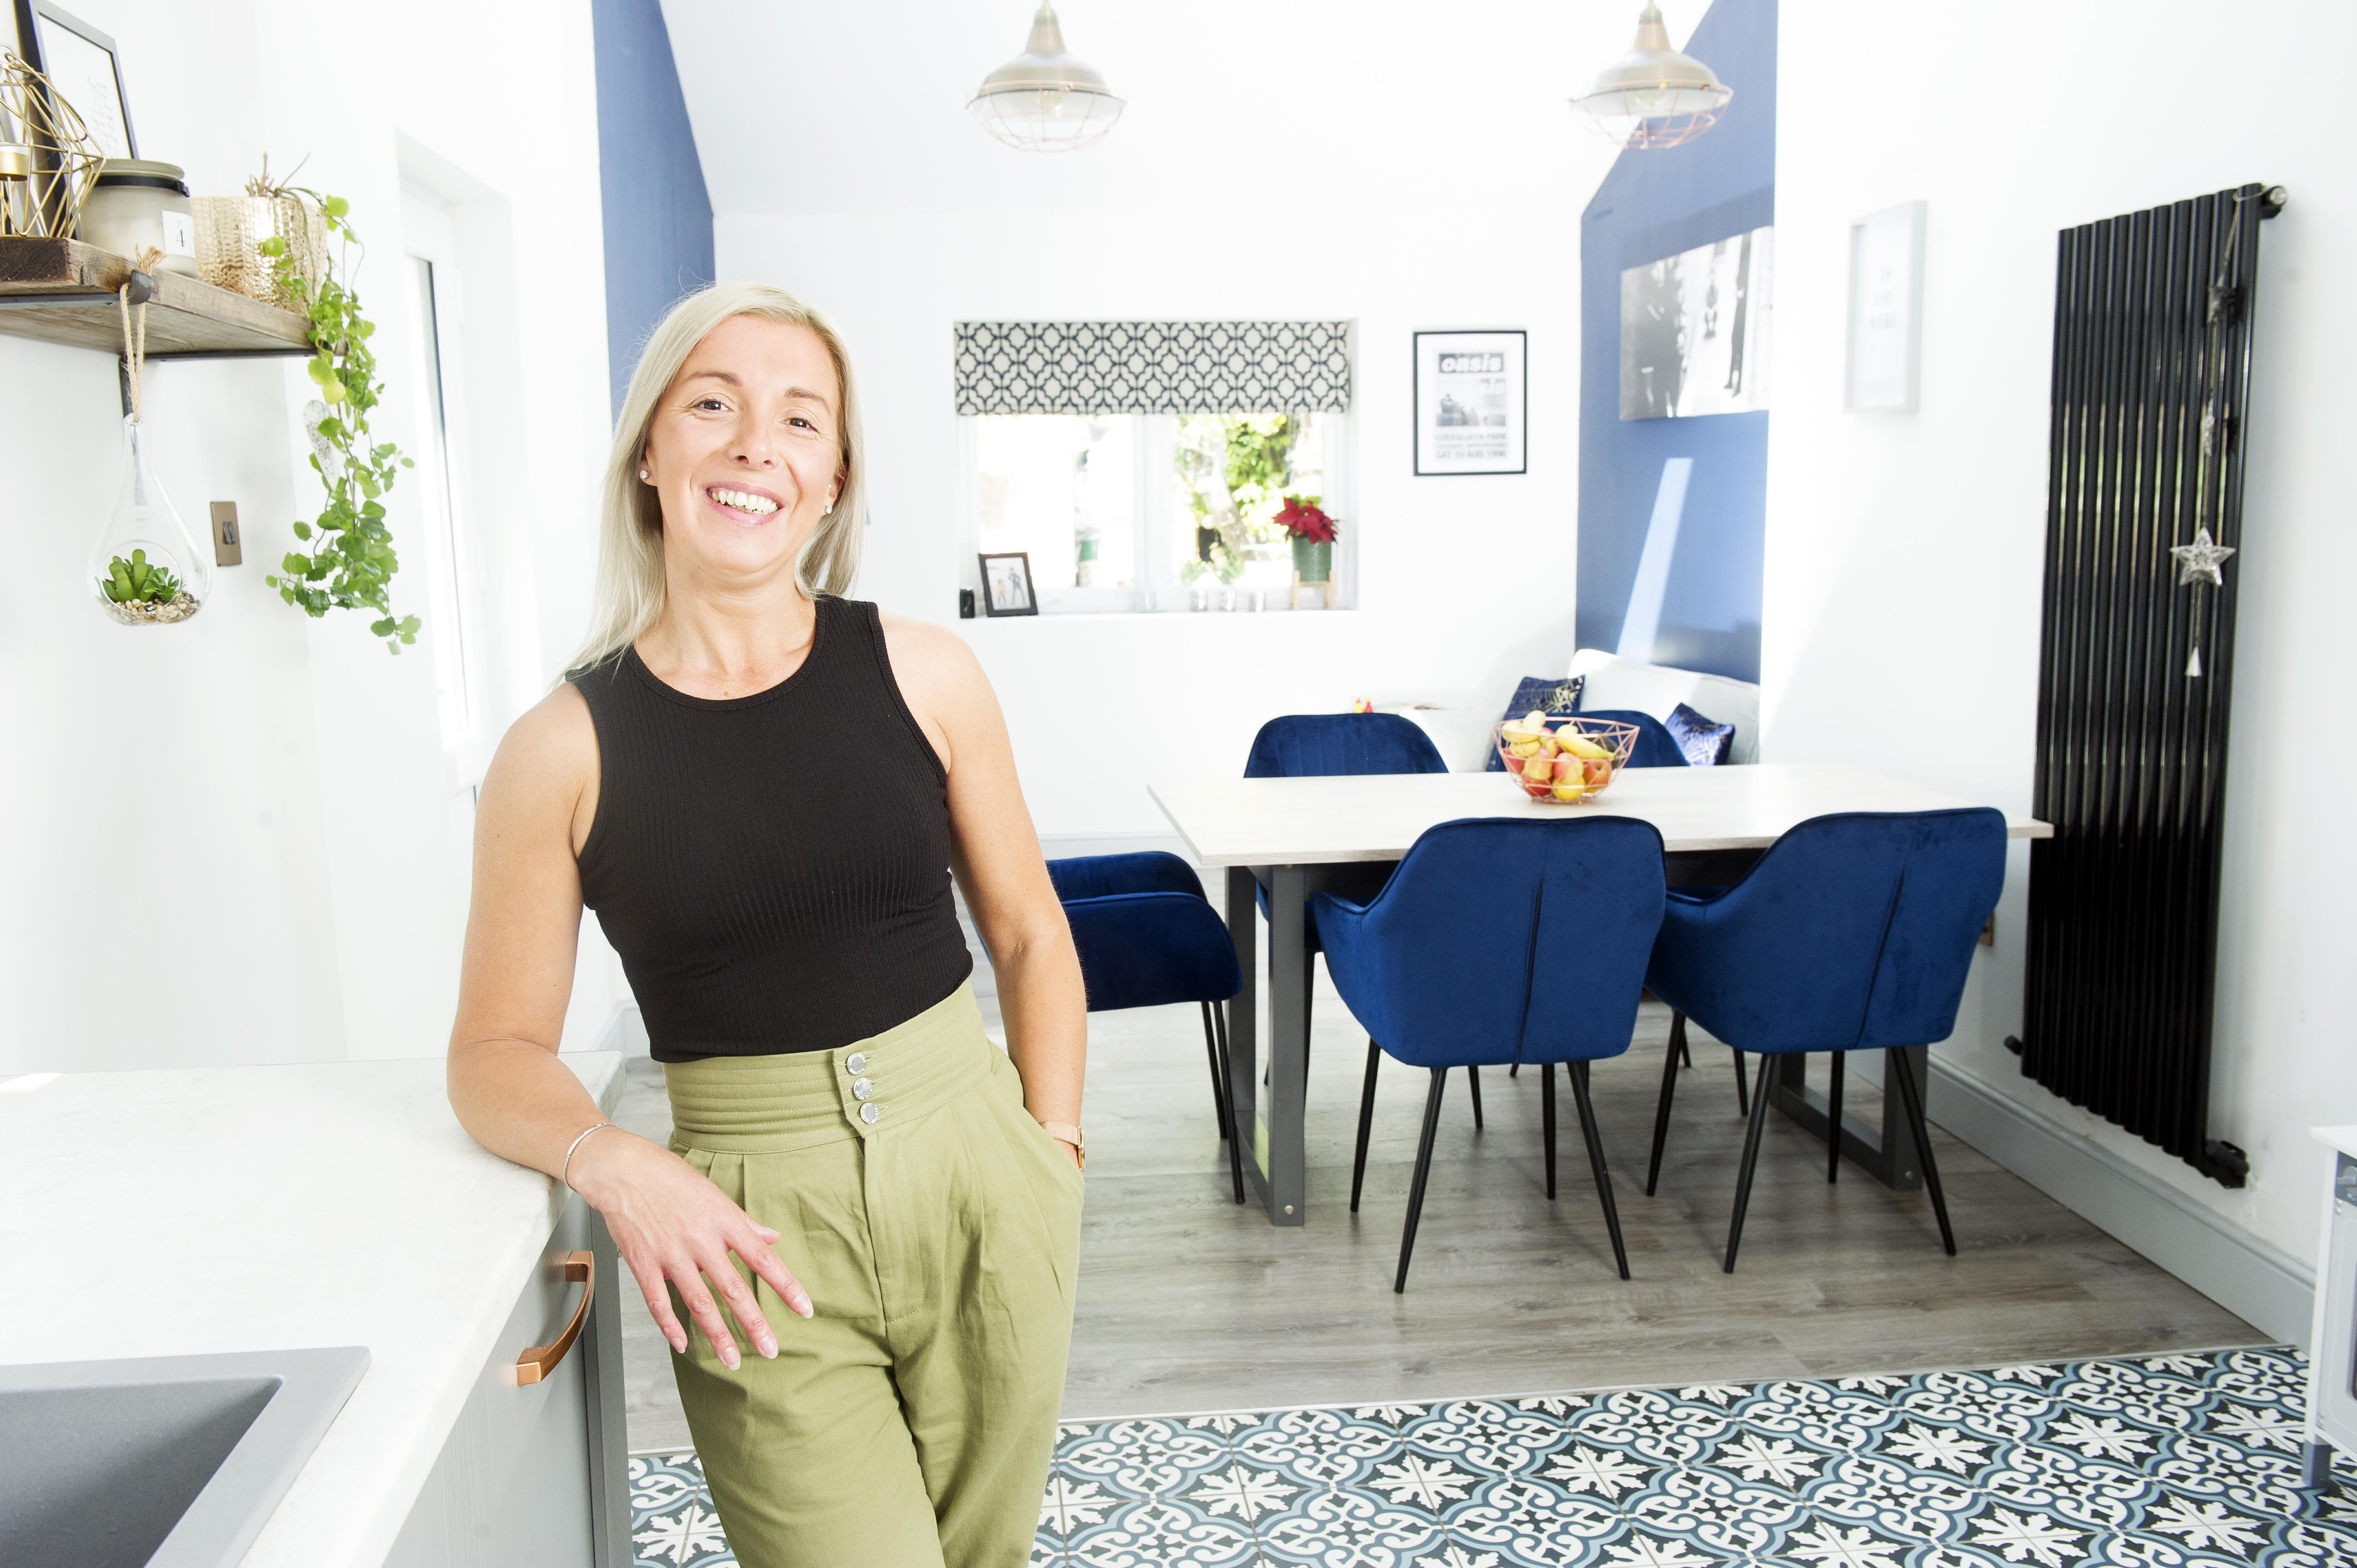 Nicky Fajardo's new kitchen diner thanks to Cumbria Home Renovation Services